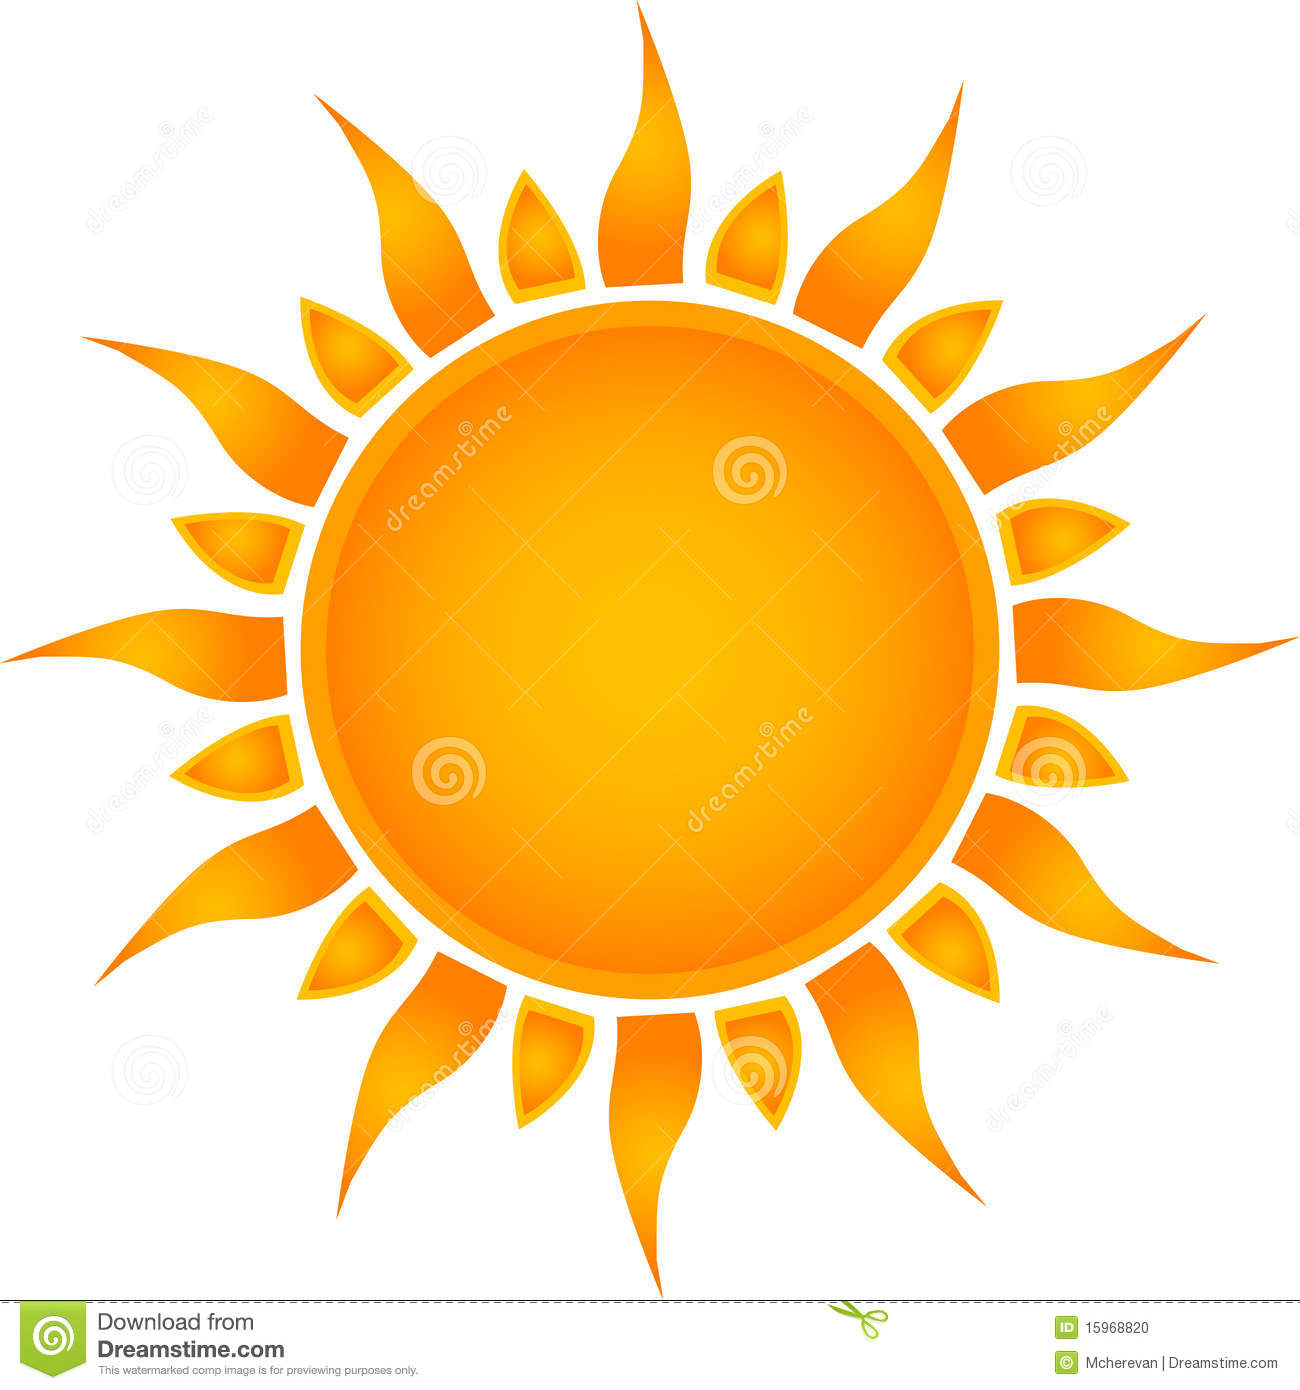 Beautiful symbol, an icon of the sun, with rays of yellow.